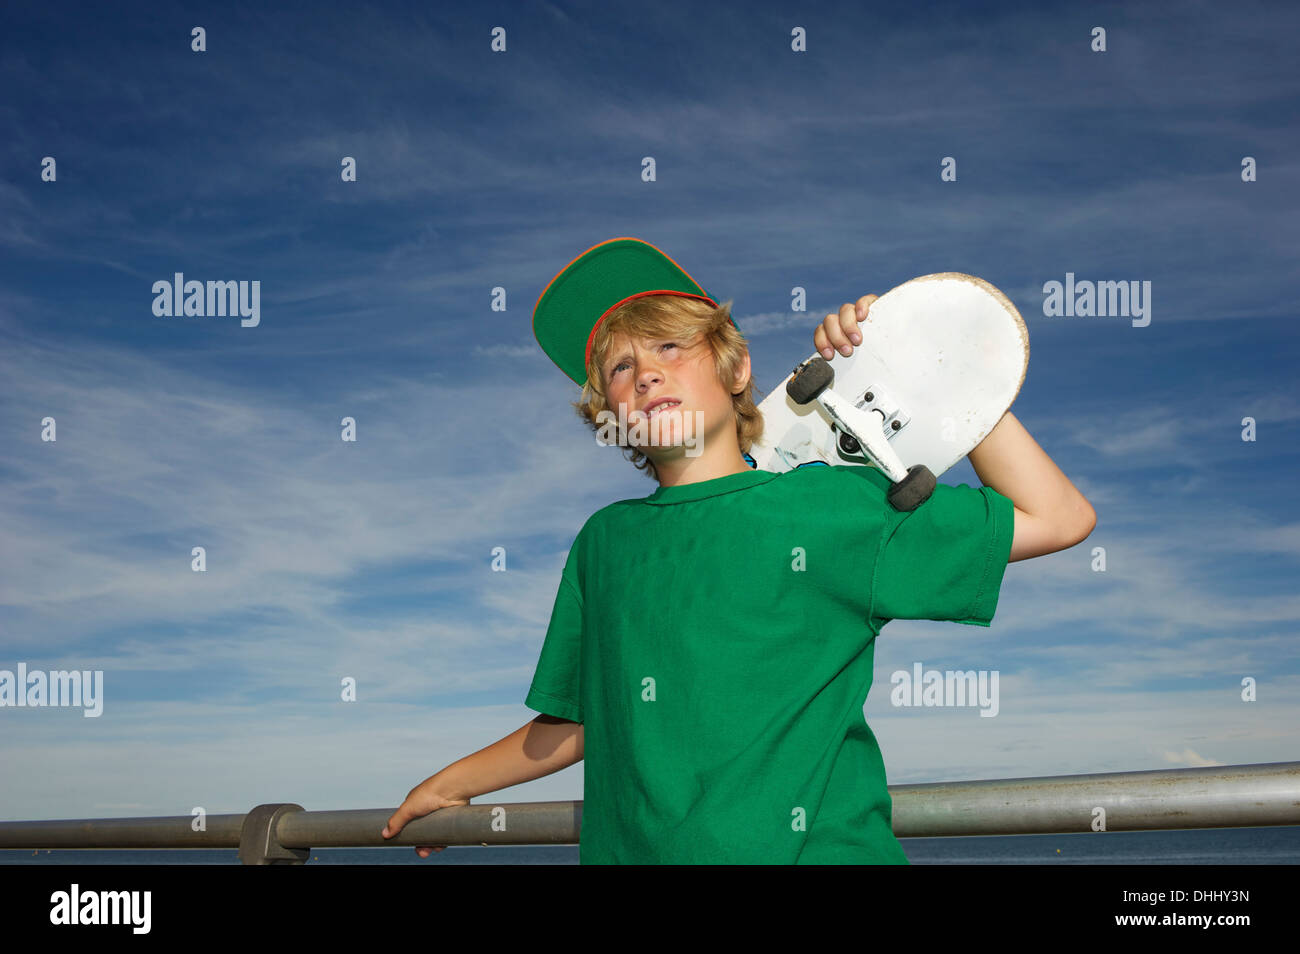 Portrait of boy holding skateboard over shoulder - Stock Image